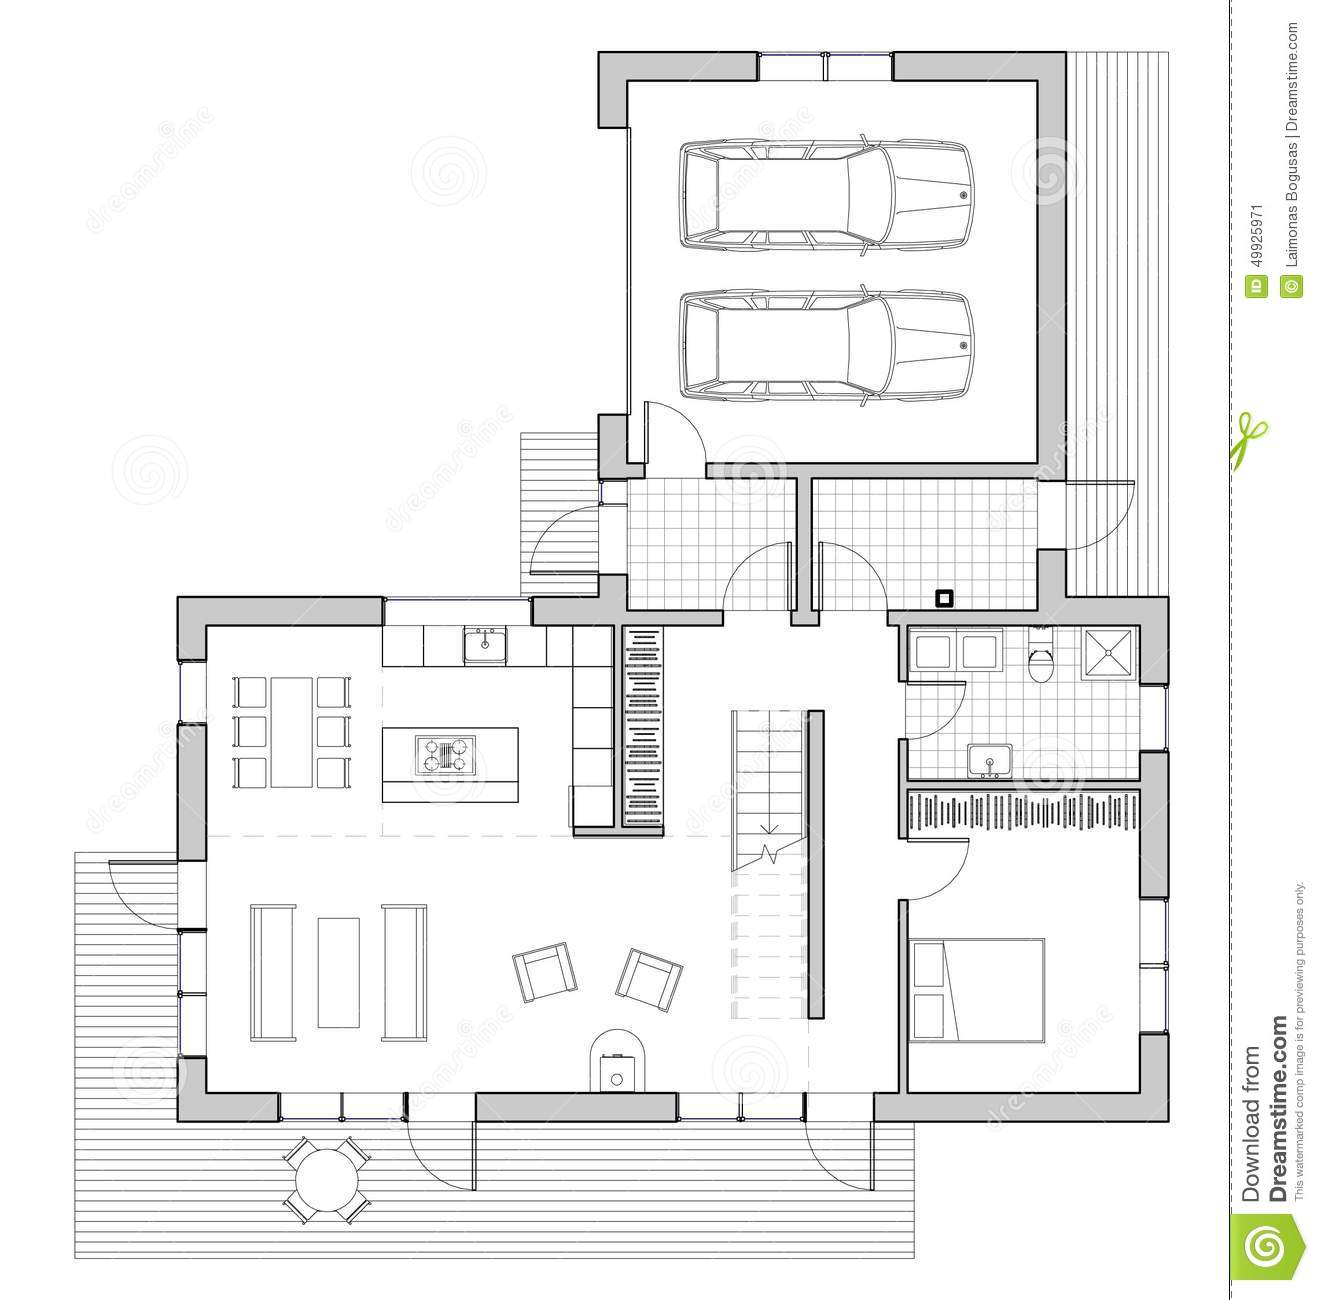 Drawing single family house stock illustration image for Progetti di ville moderne